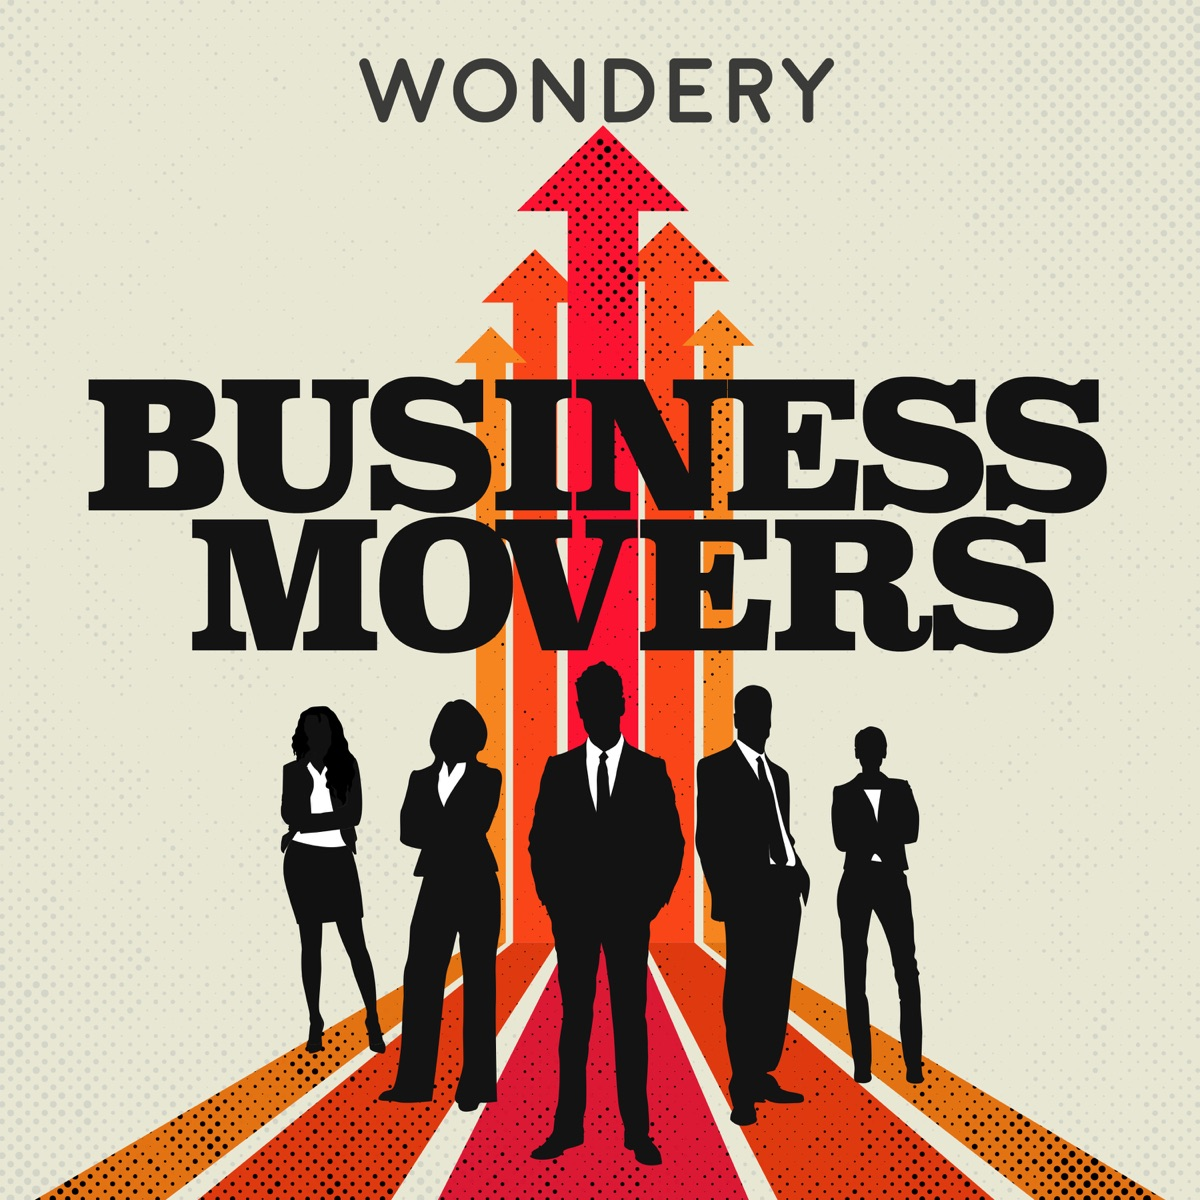 Business Movers